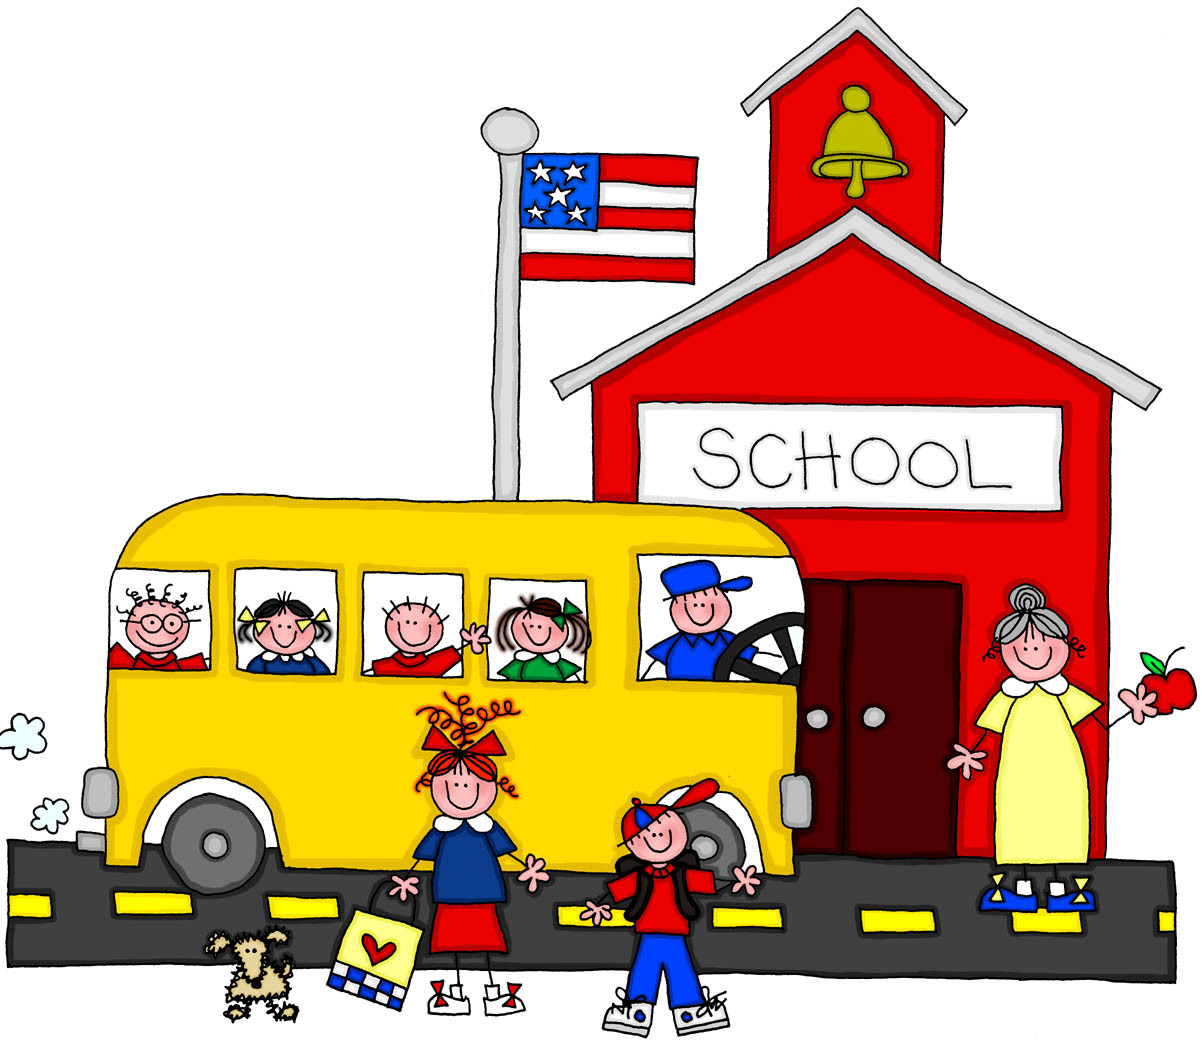 Schoolhouse clipart. Of school house transitionsfv